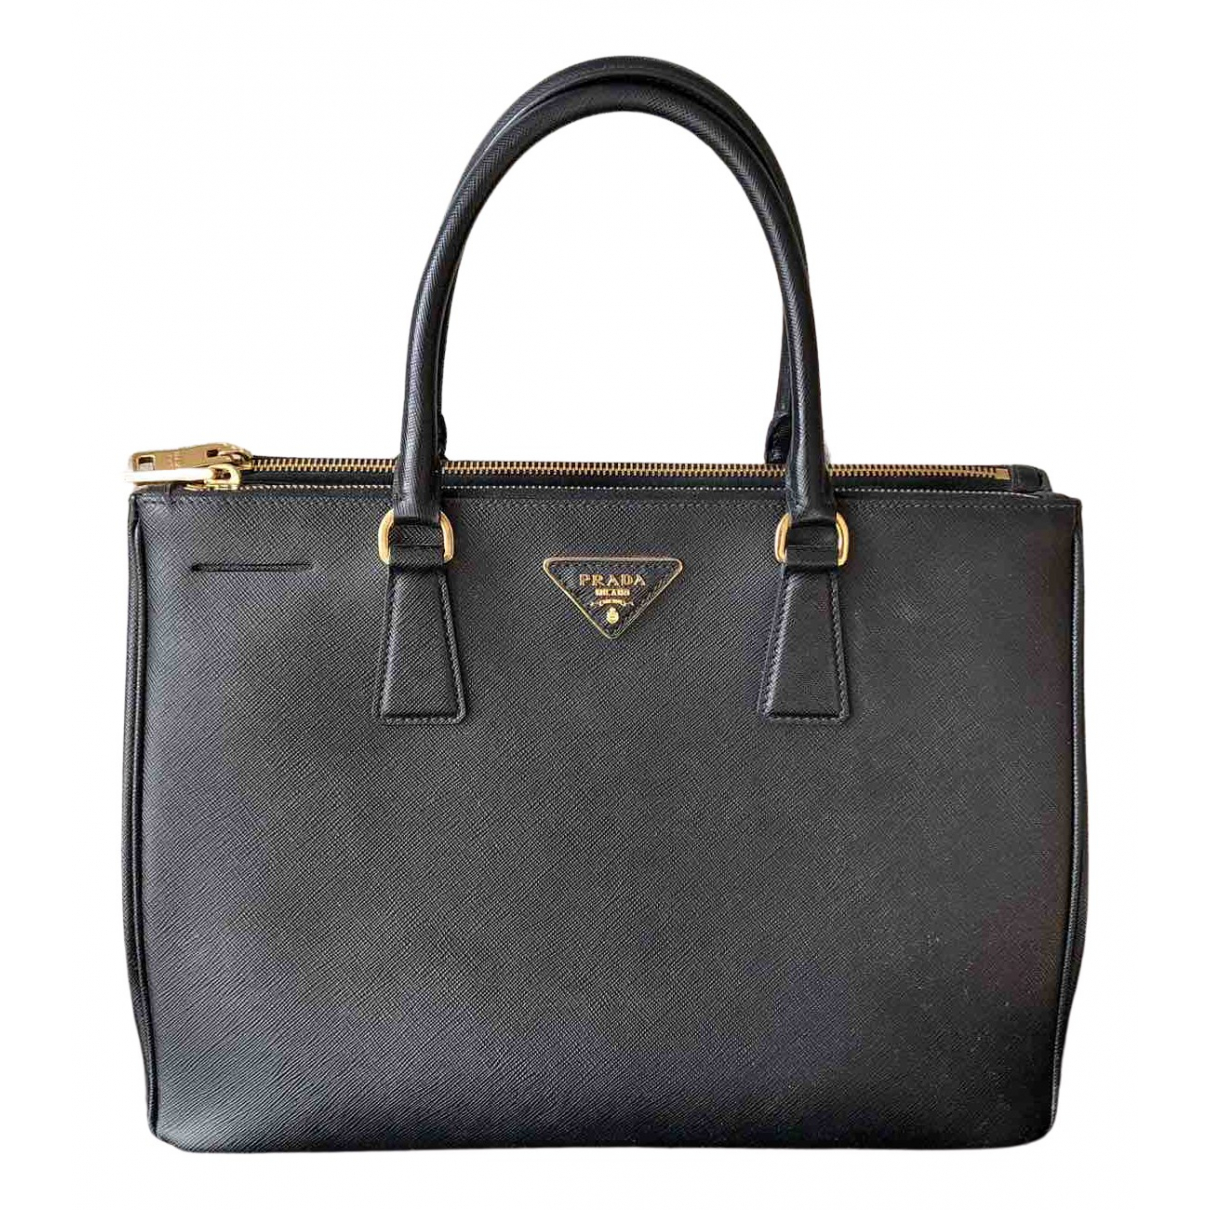 Prada Galleria Black Leather handbag for Women N